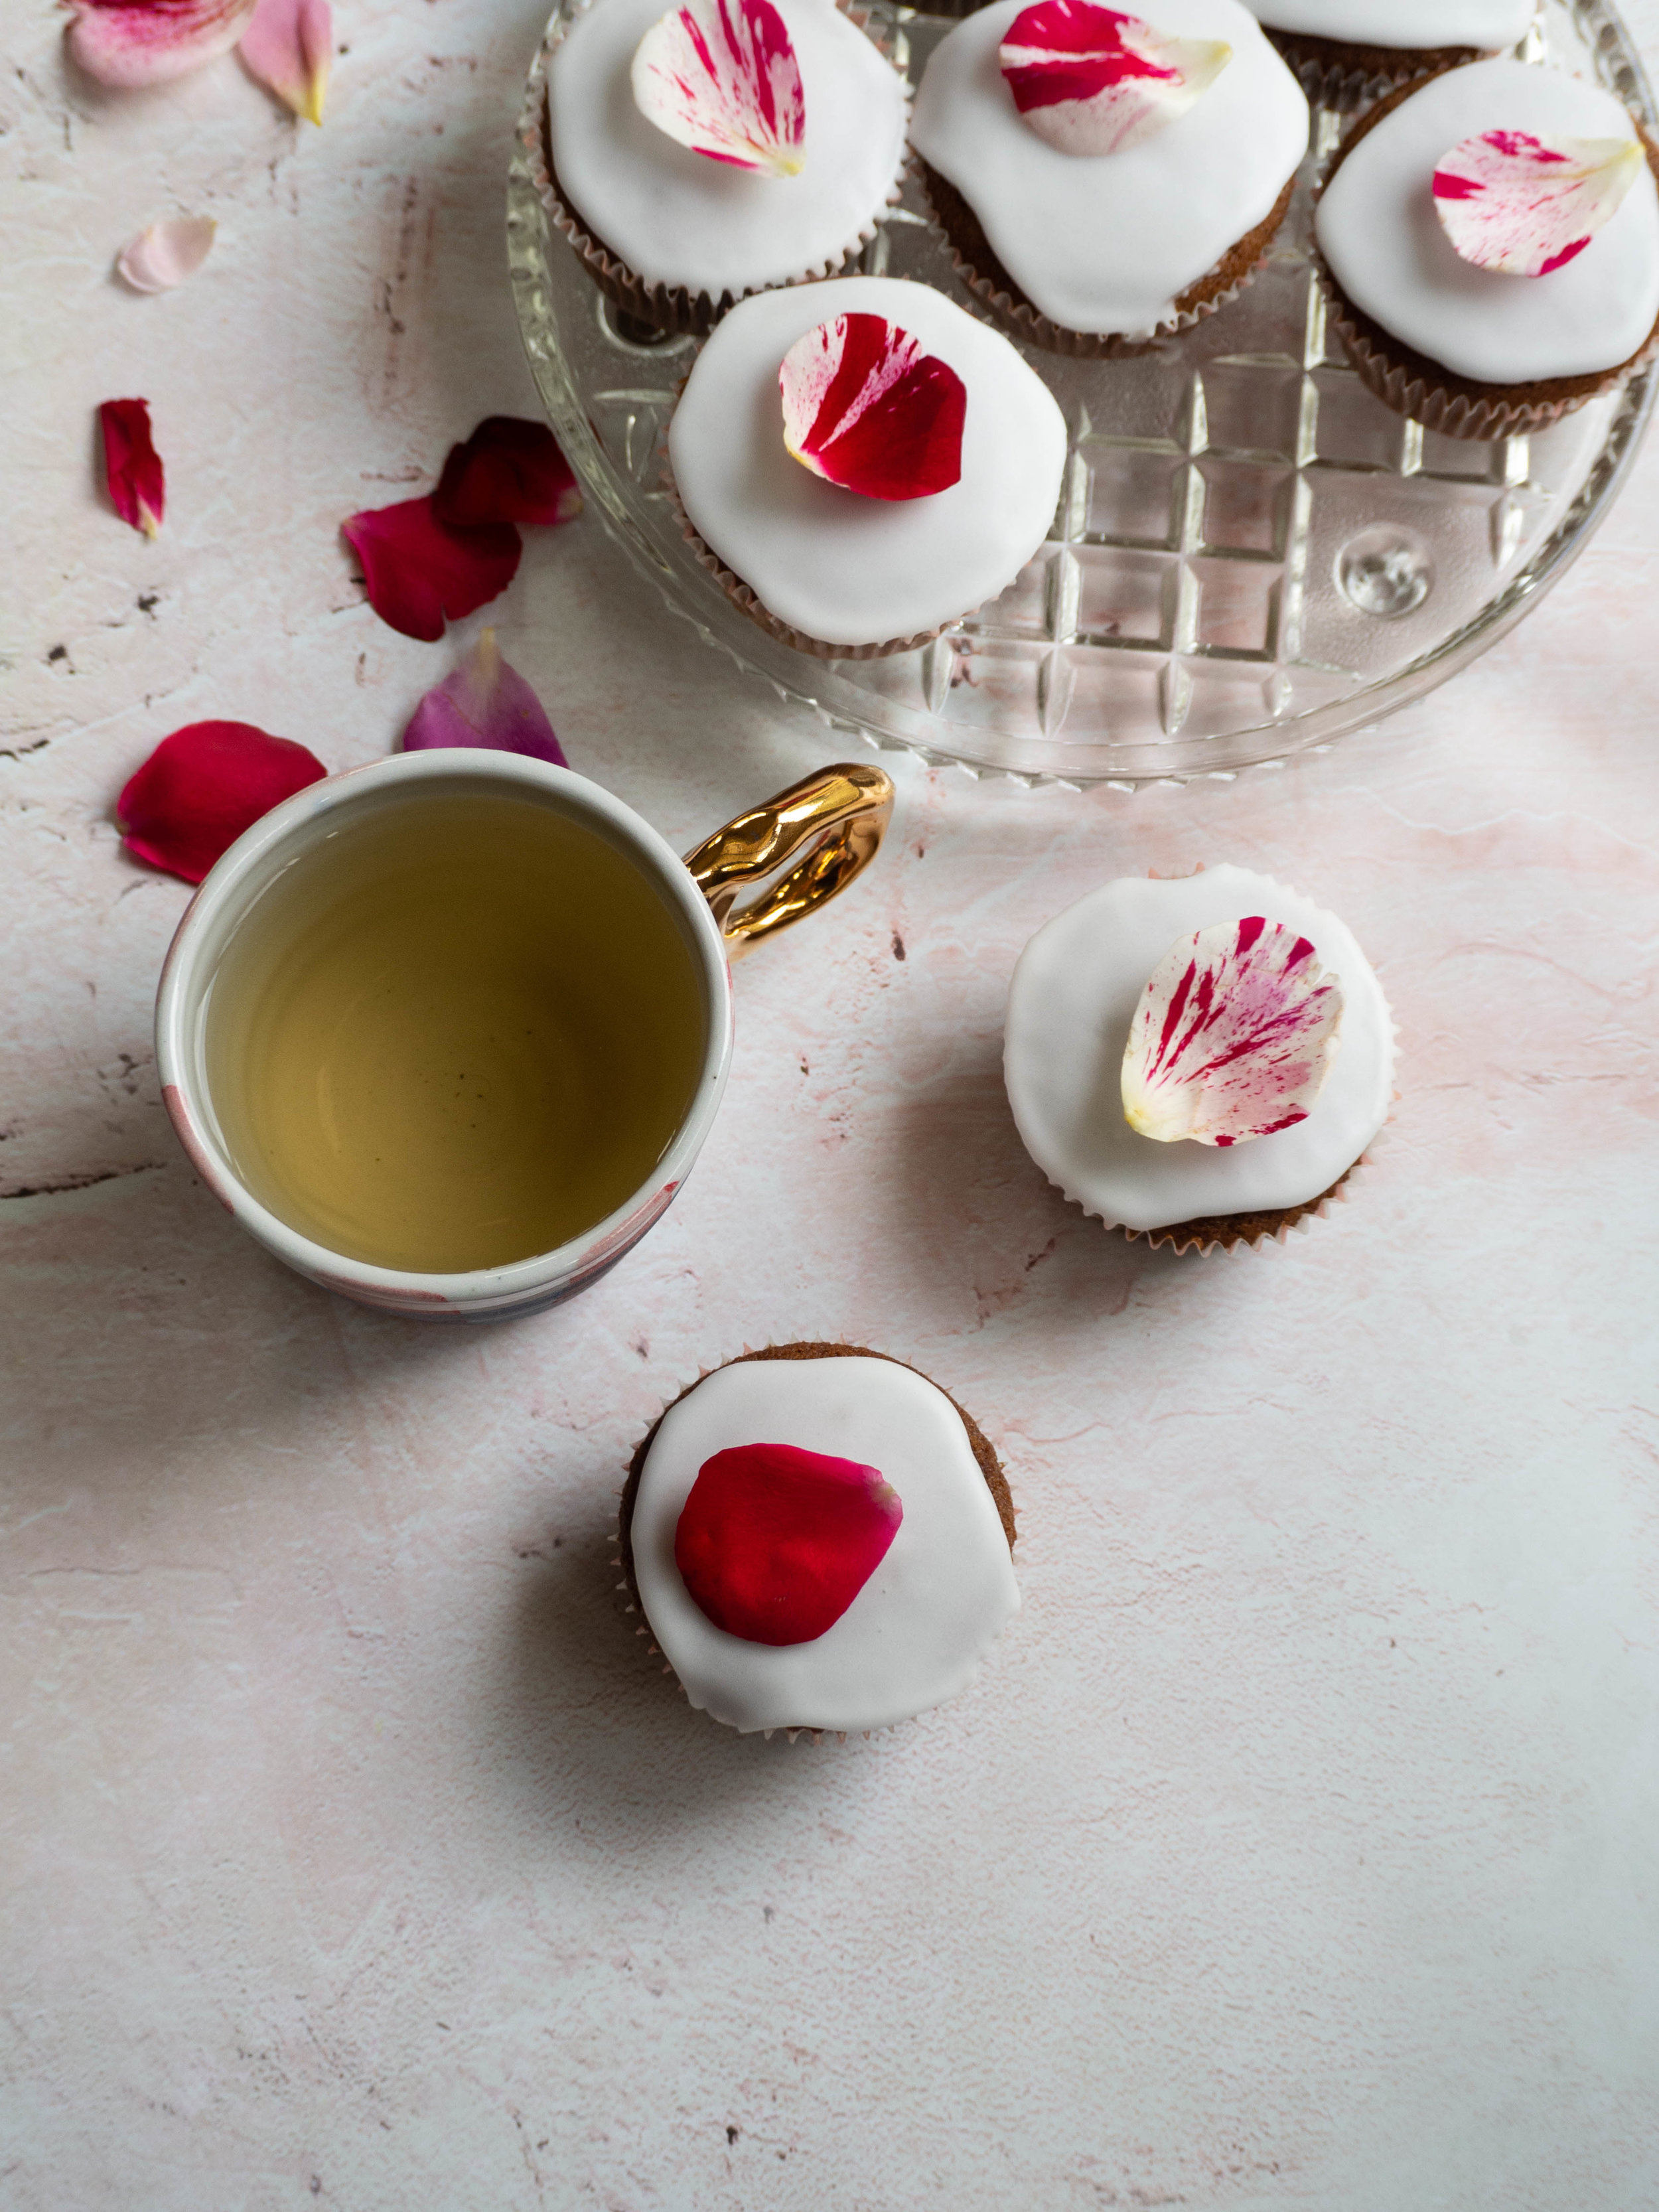 Ginger Date and Rose Cupcakes